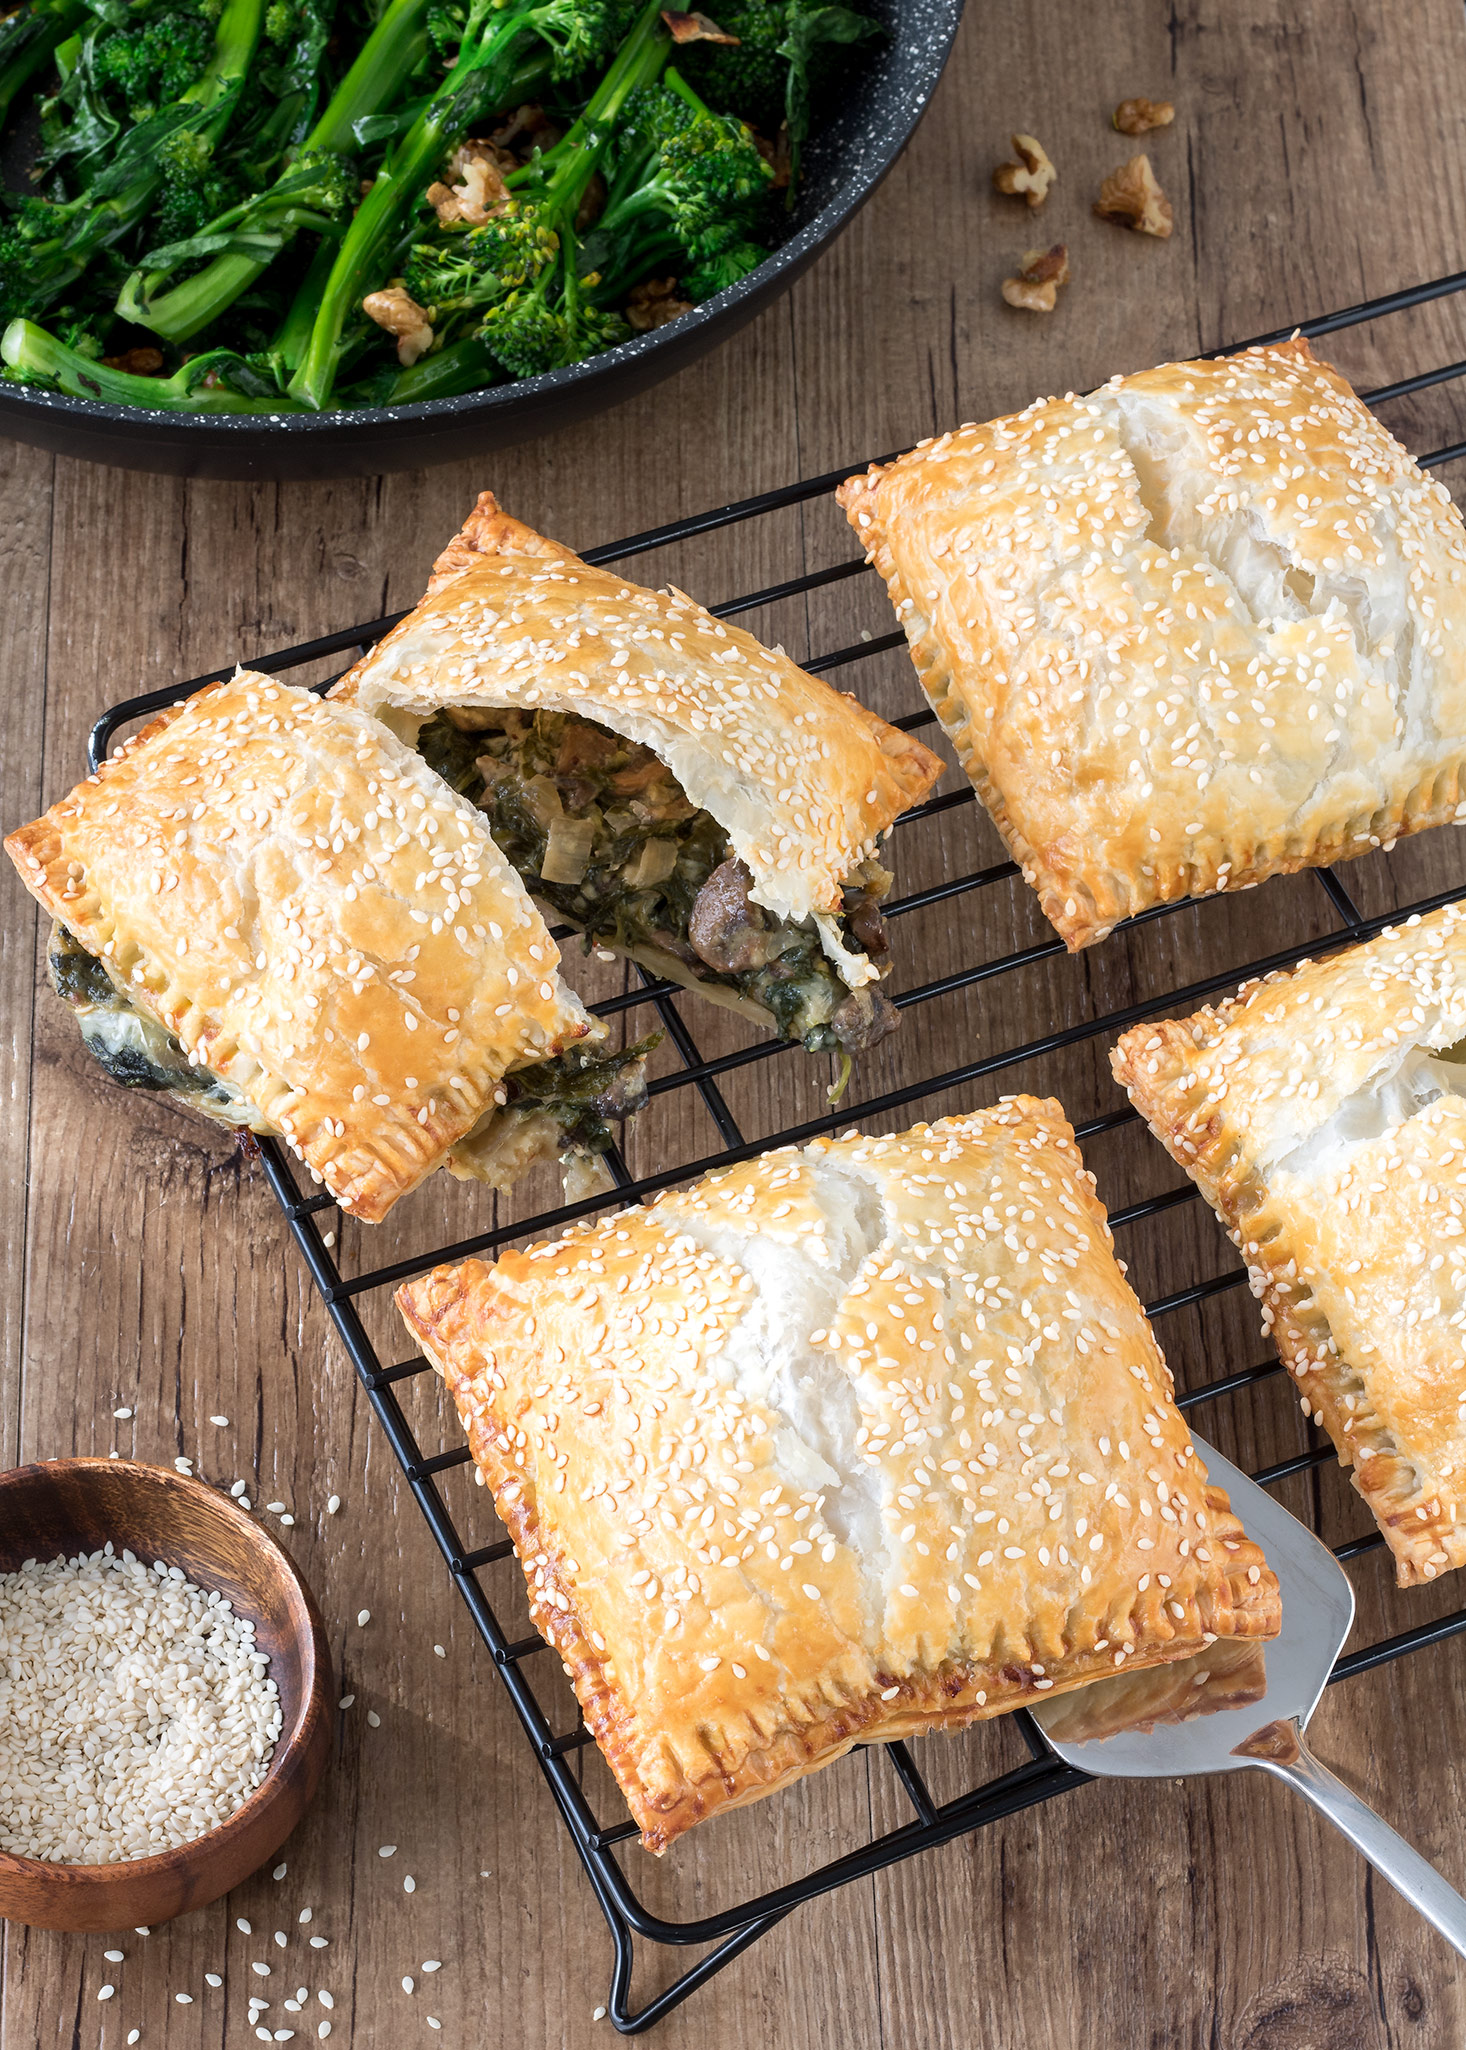 Who doesn't love a good pie?! These individual creamy mushroom and spinach pies with buttery puff pastry are a delicious vegetarian meal. Sautéed broccolini makes a great accompaniment.